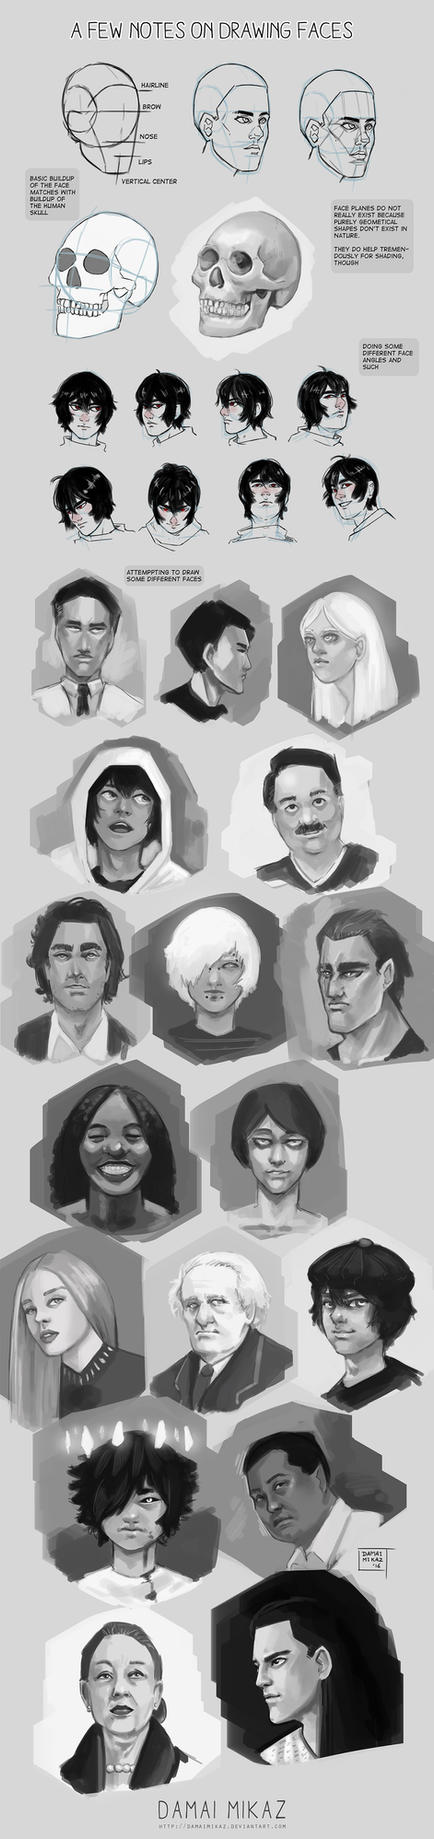 Sketchdump June 2016 [Faces] by DamaiMikaz